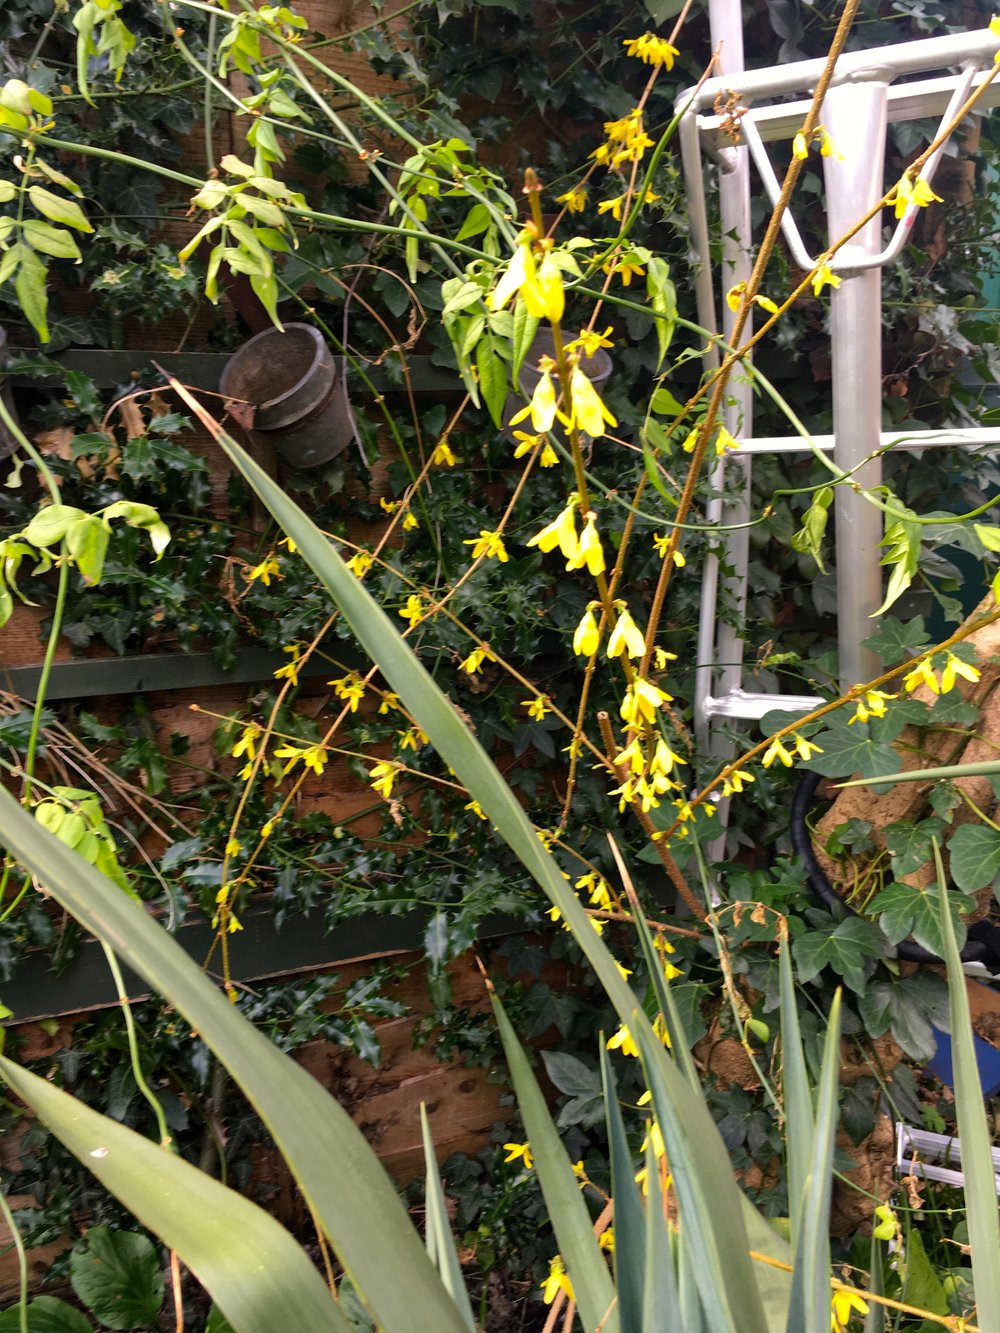 forsythia, a ladder and the spikiest of spiky plants